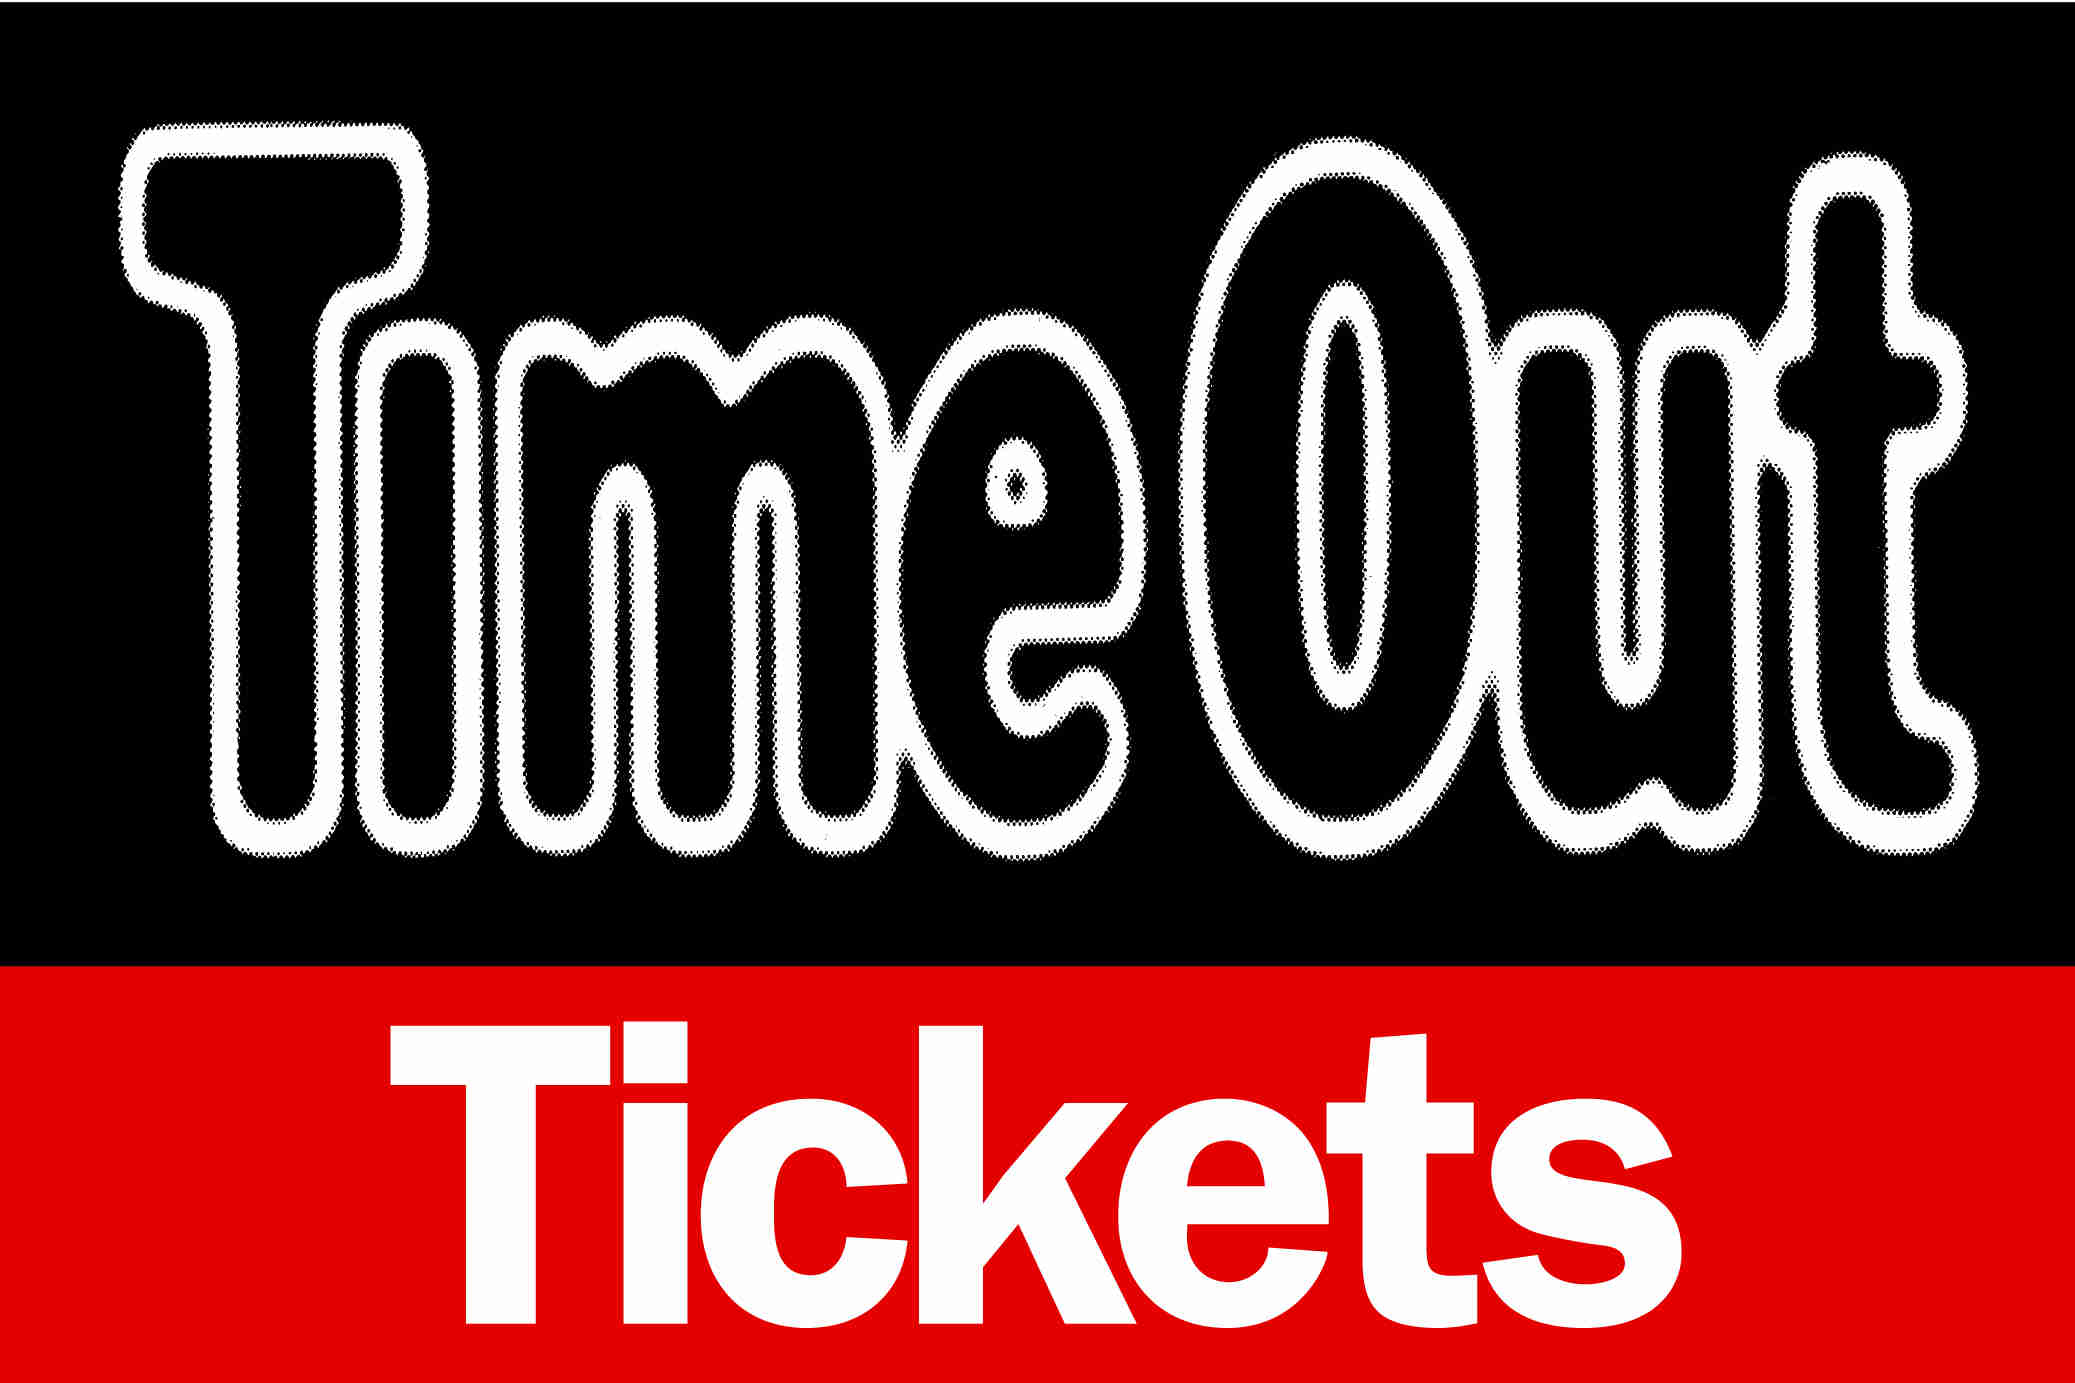 Time Out Tickets